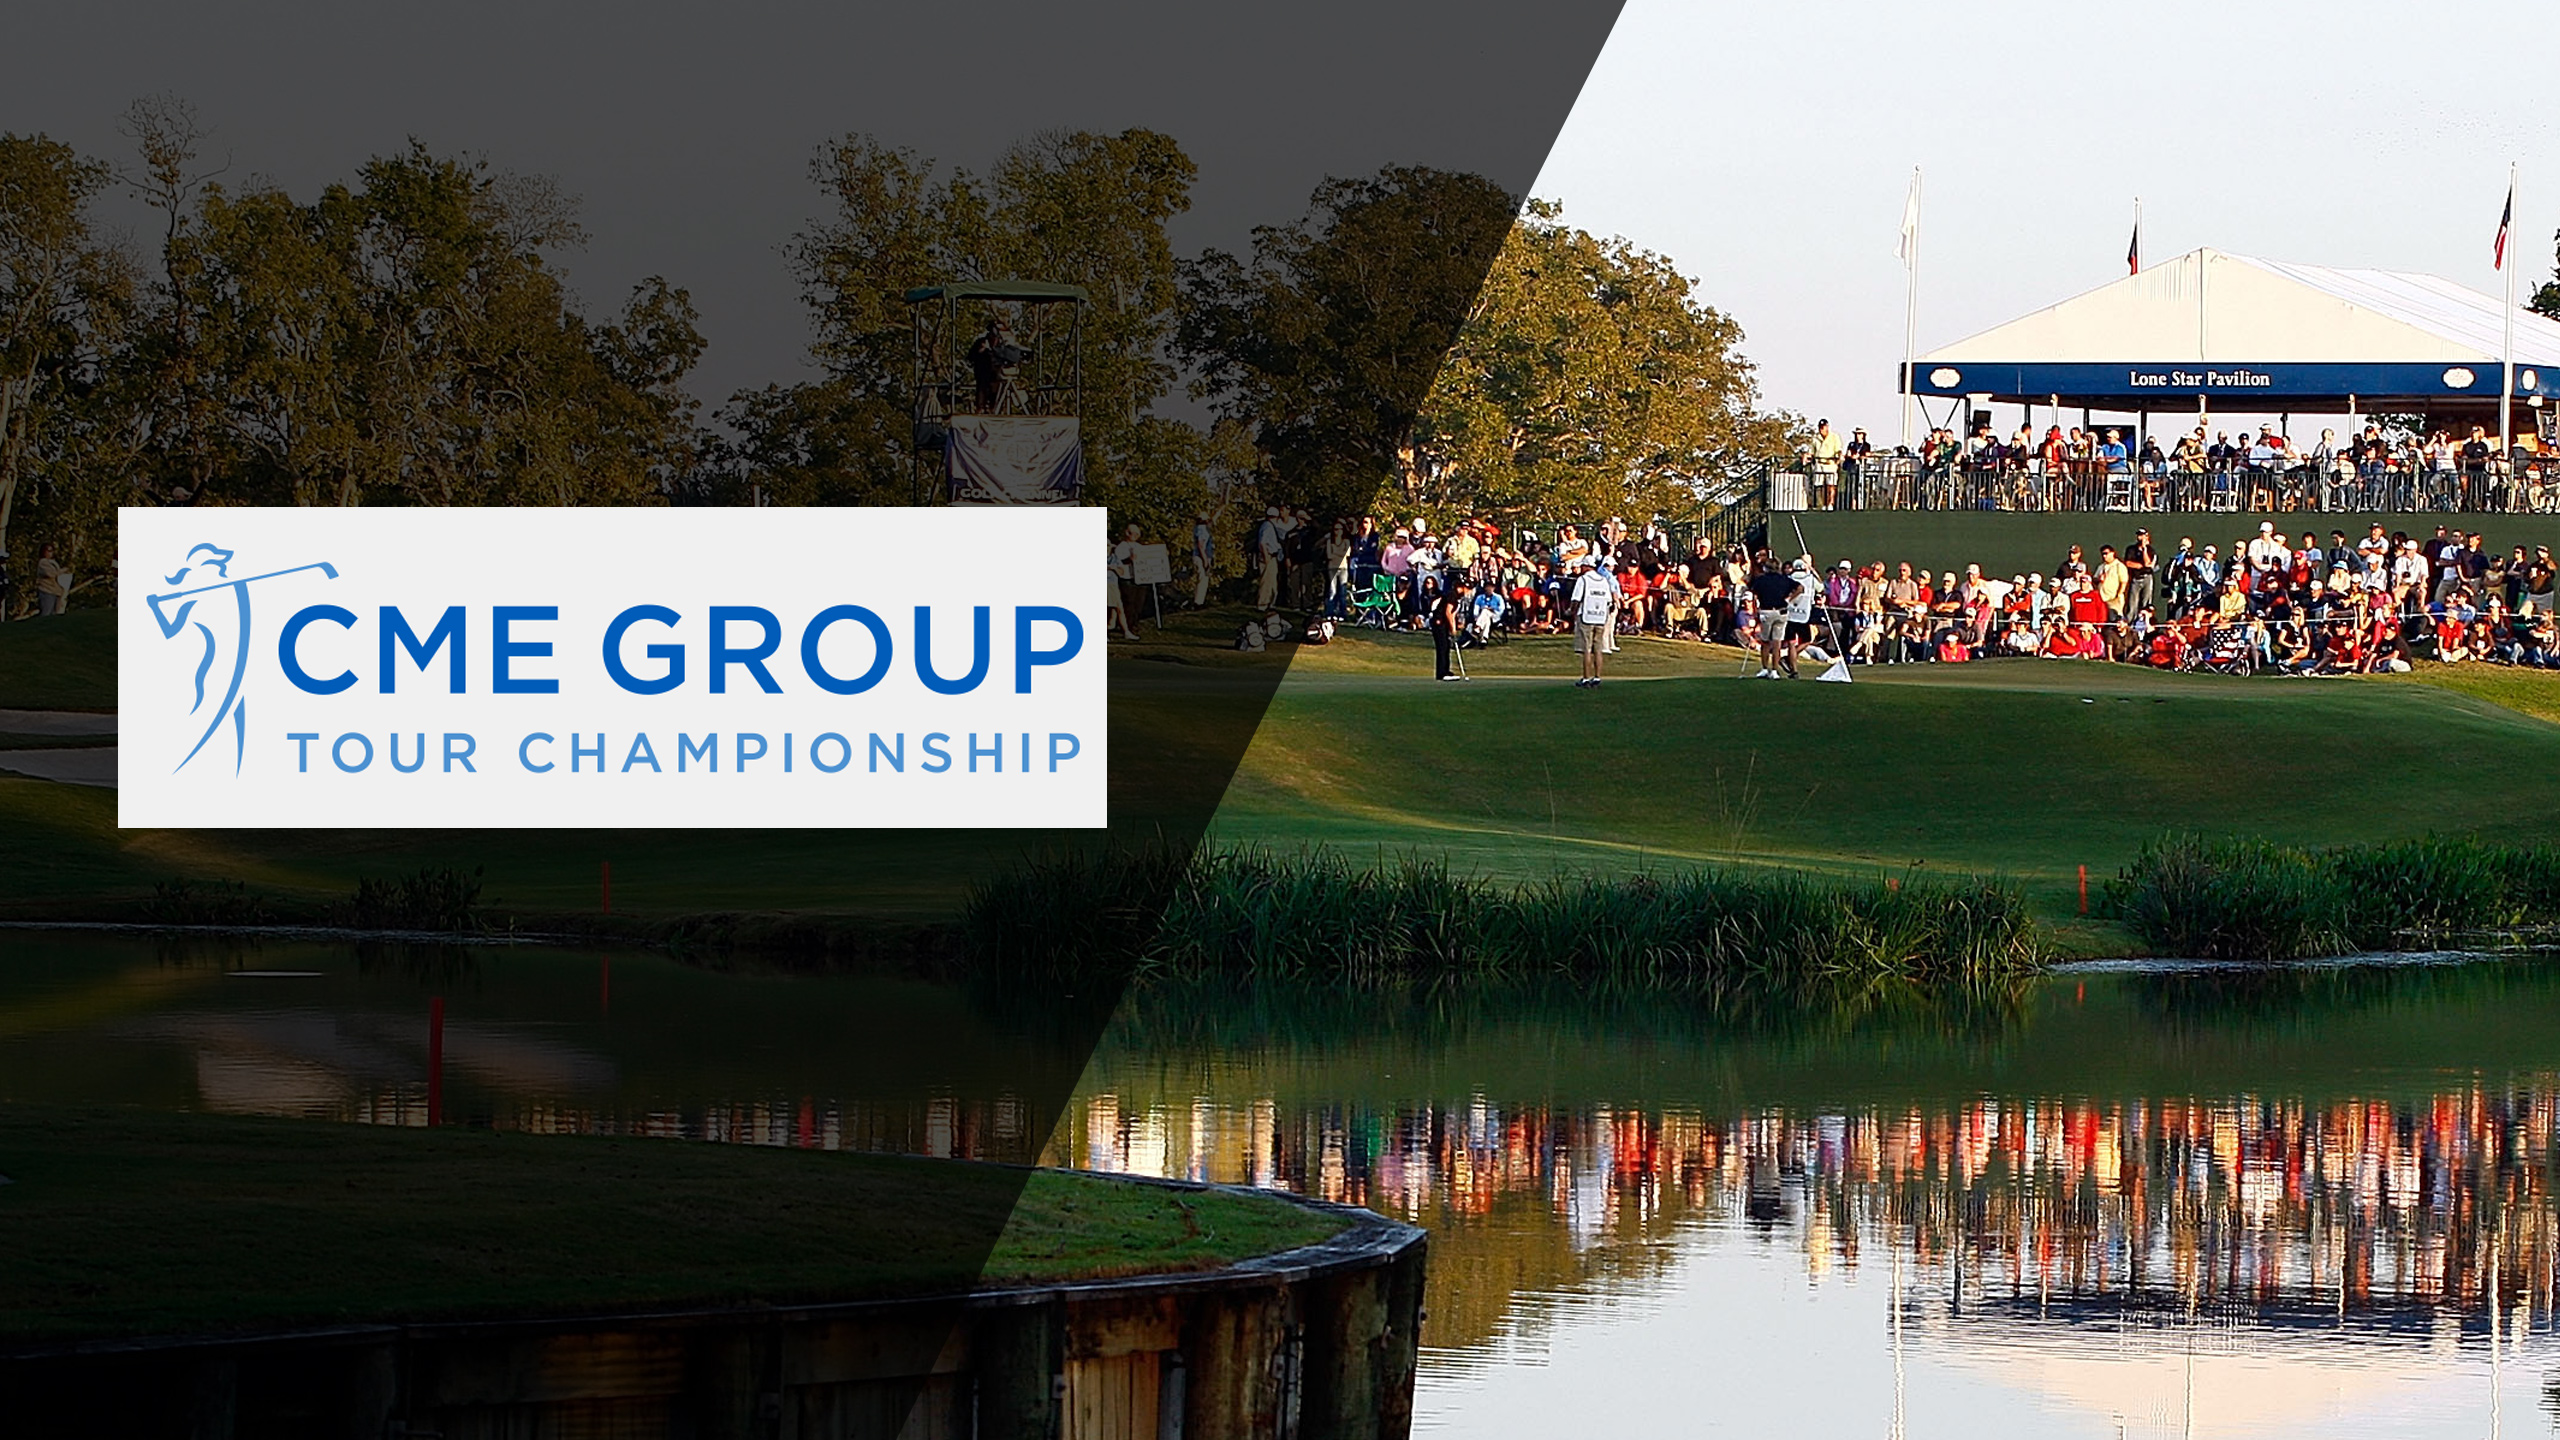 CME Group Tour Championship (Final Round)